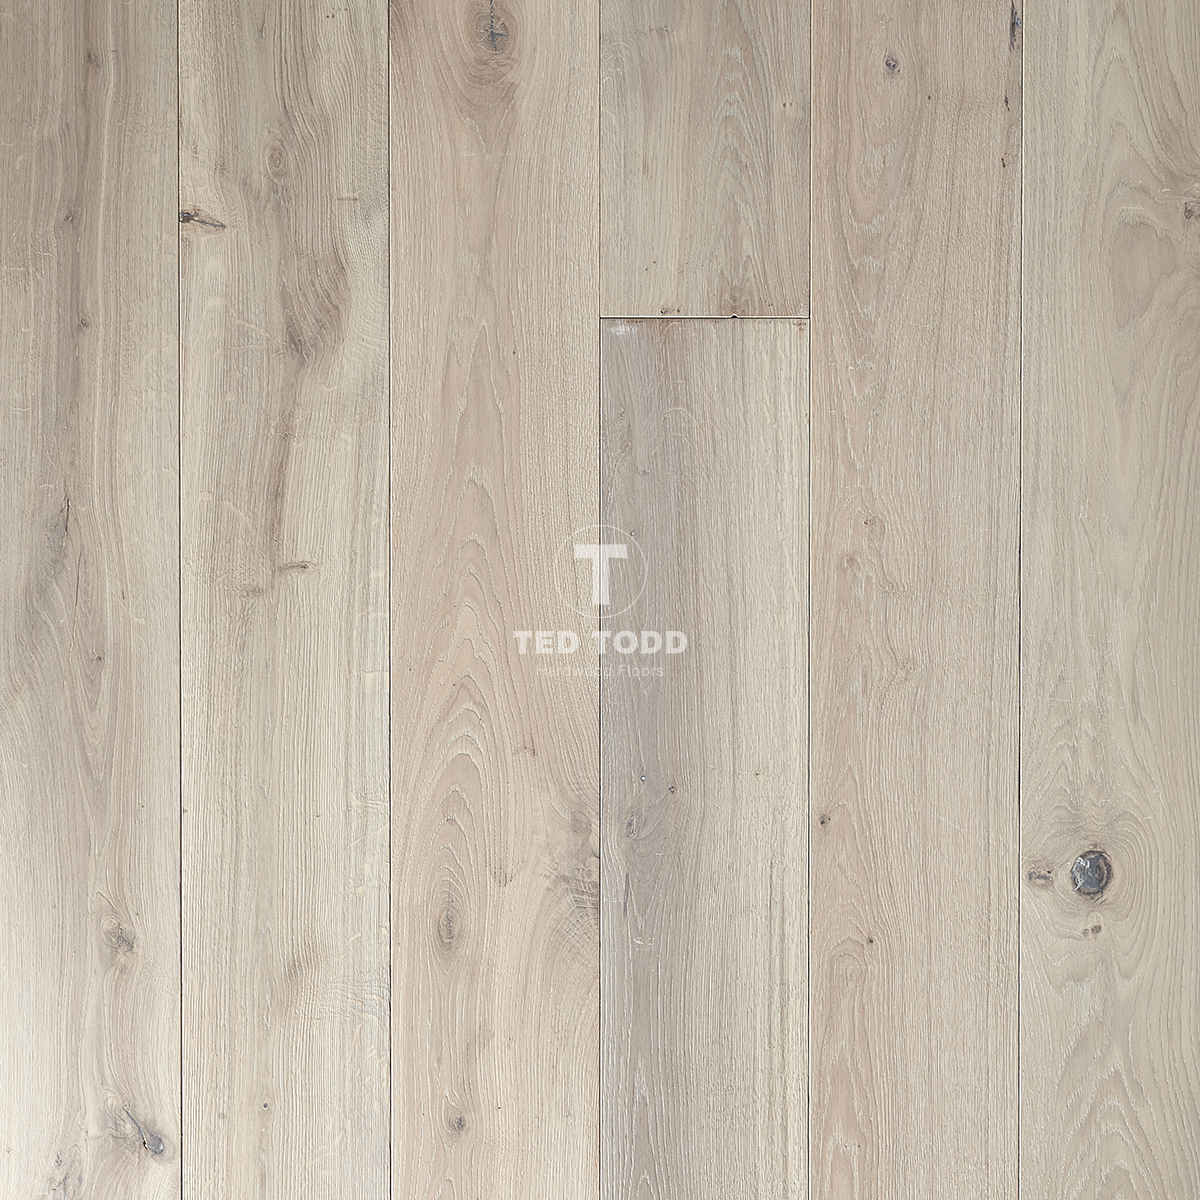 Dalby DALBY01 | Ted Todd Classic Engineered Wood